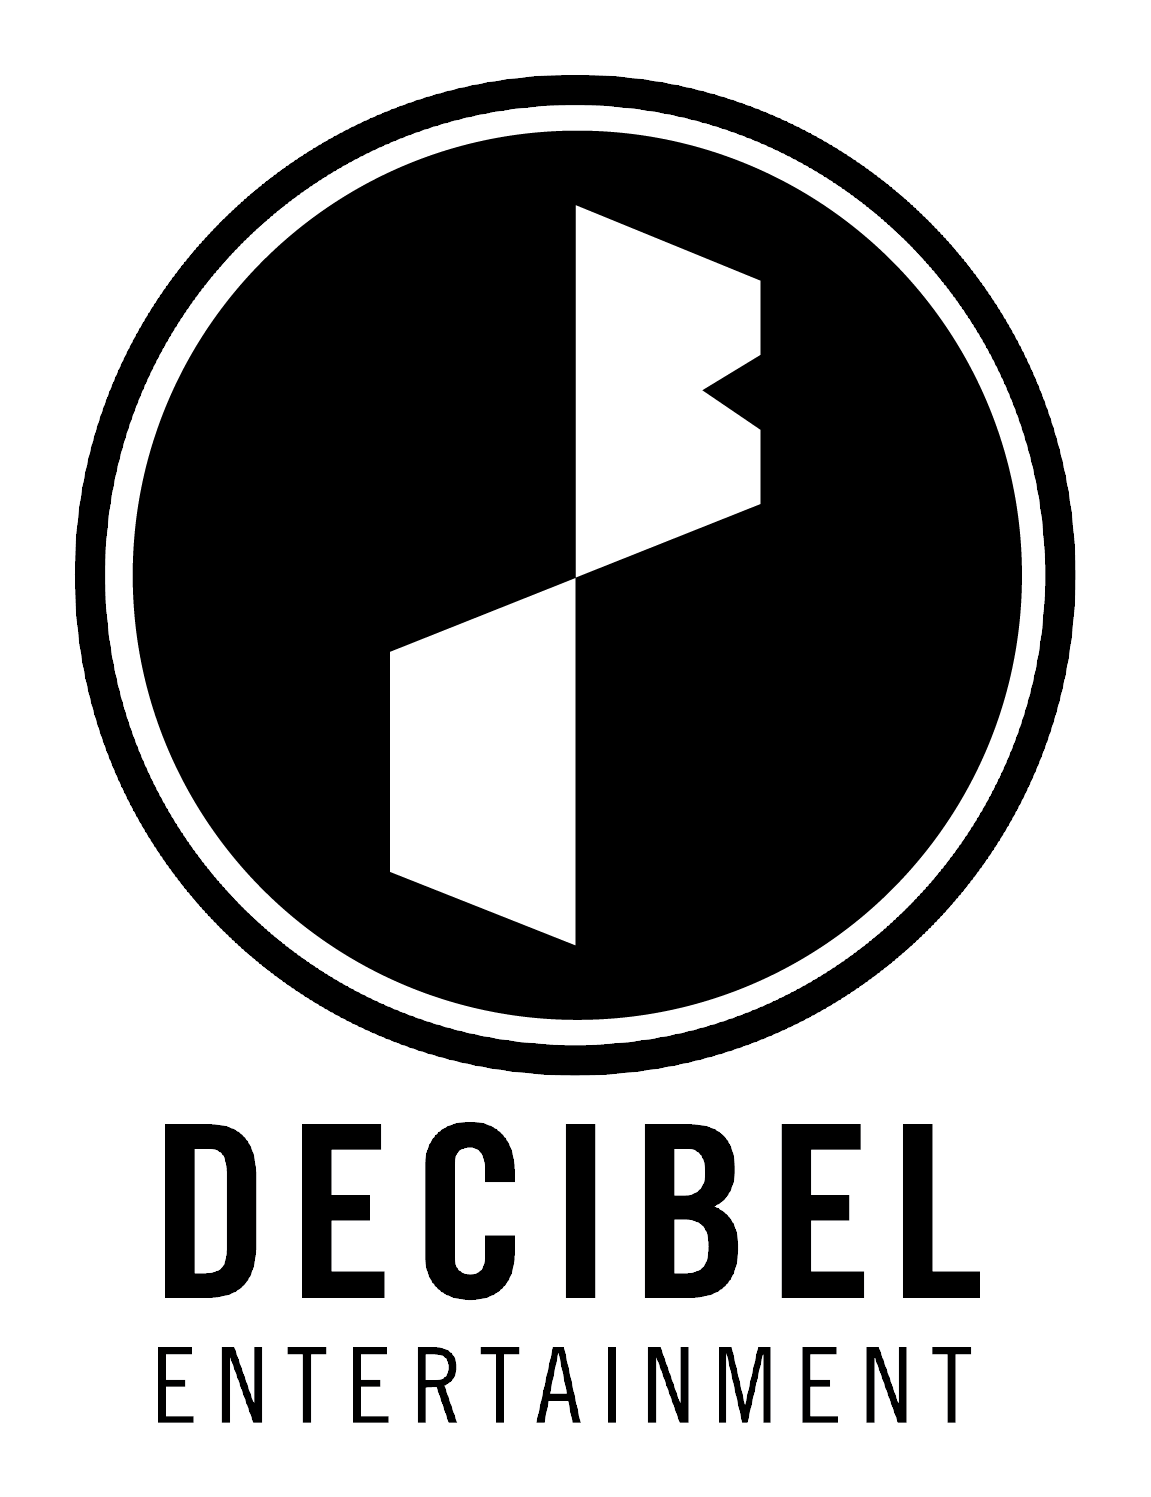 Decibel_VerticalVectorO_Black_CutOut_copy_(3).png